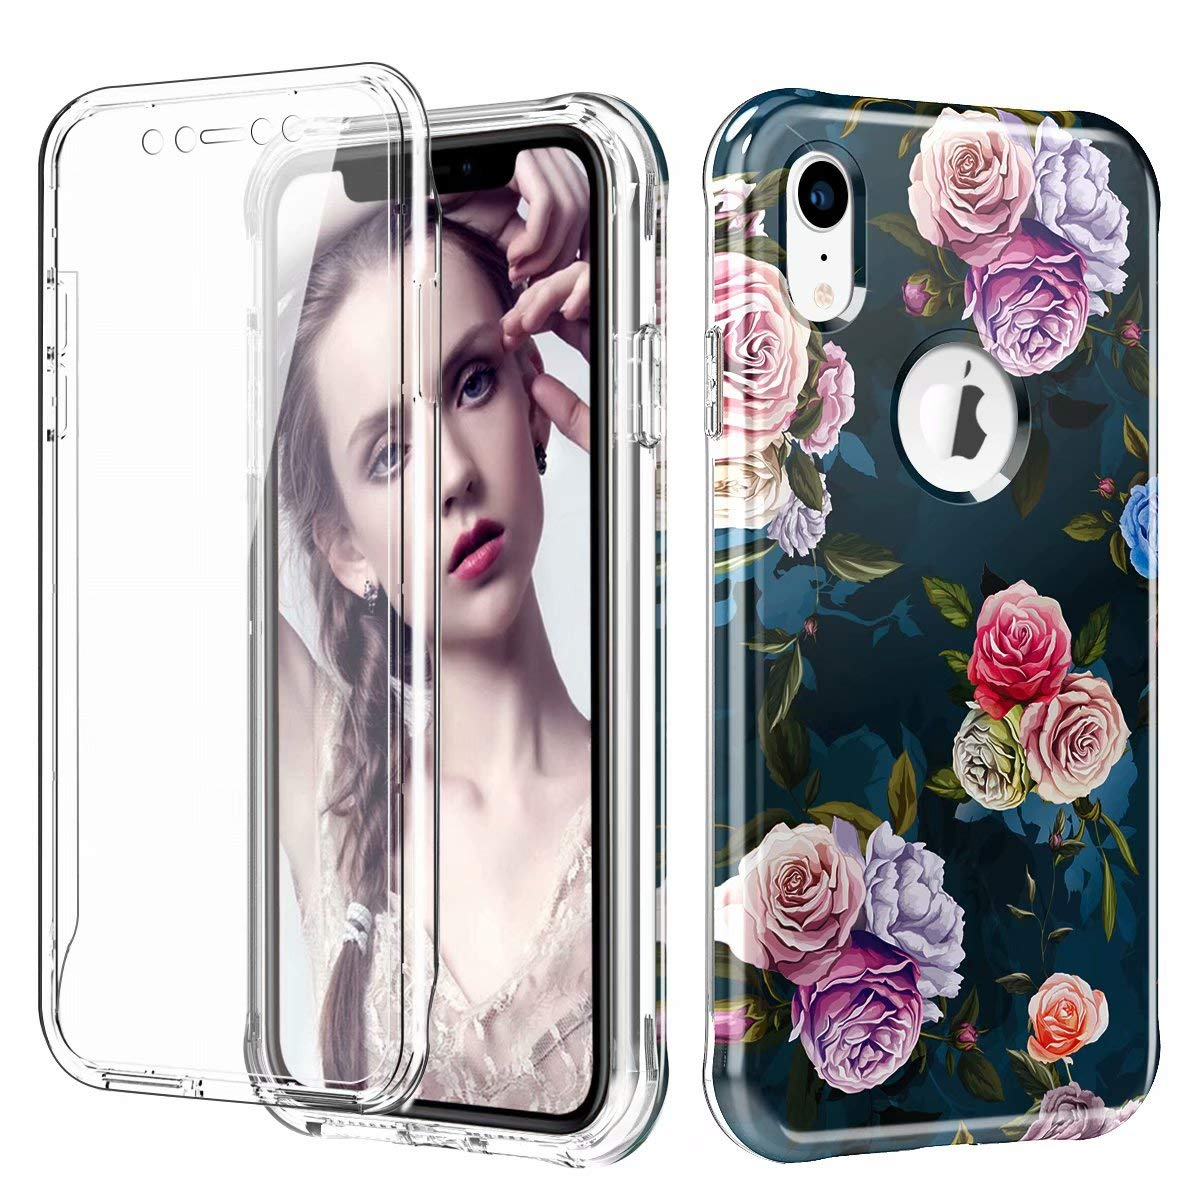 iPhone XR Case, Ranyi Full Body Protective Crystal Transparent Cover Hybrid Bumper [Built in Screen Protector] Shock Absorbing Slim Flexible Resilient TPU Case for 6.1'' iPhone XR (2018), Flower by Ranyi